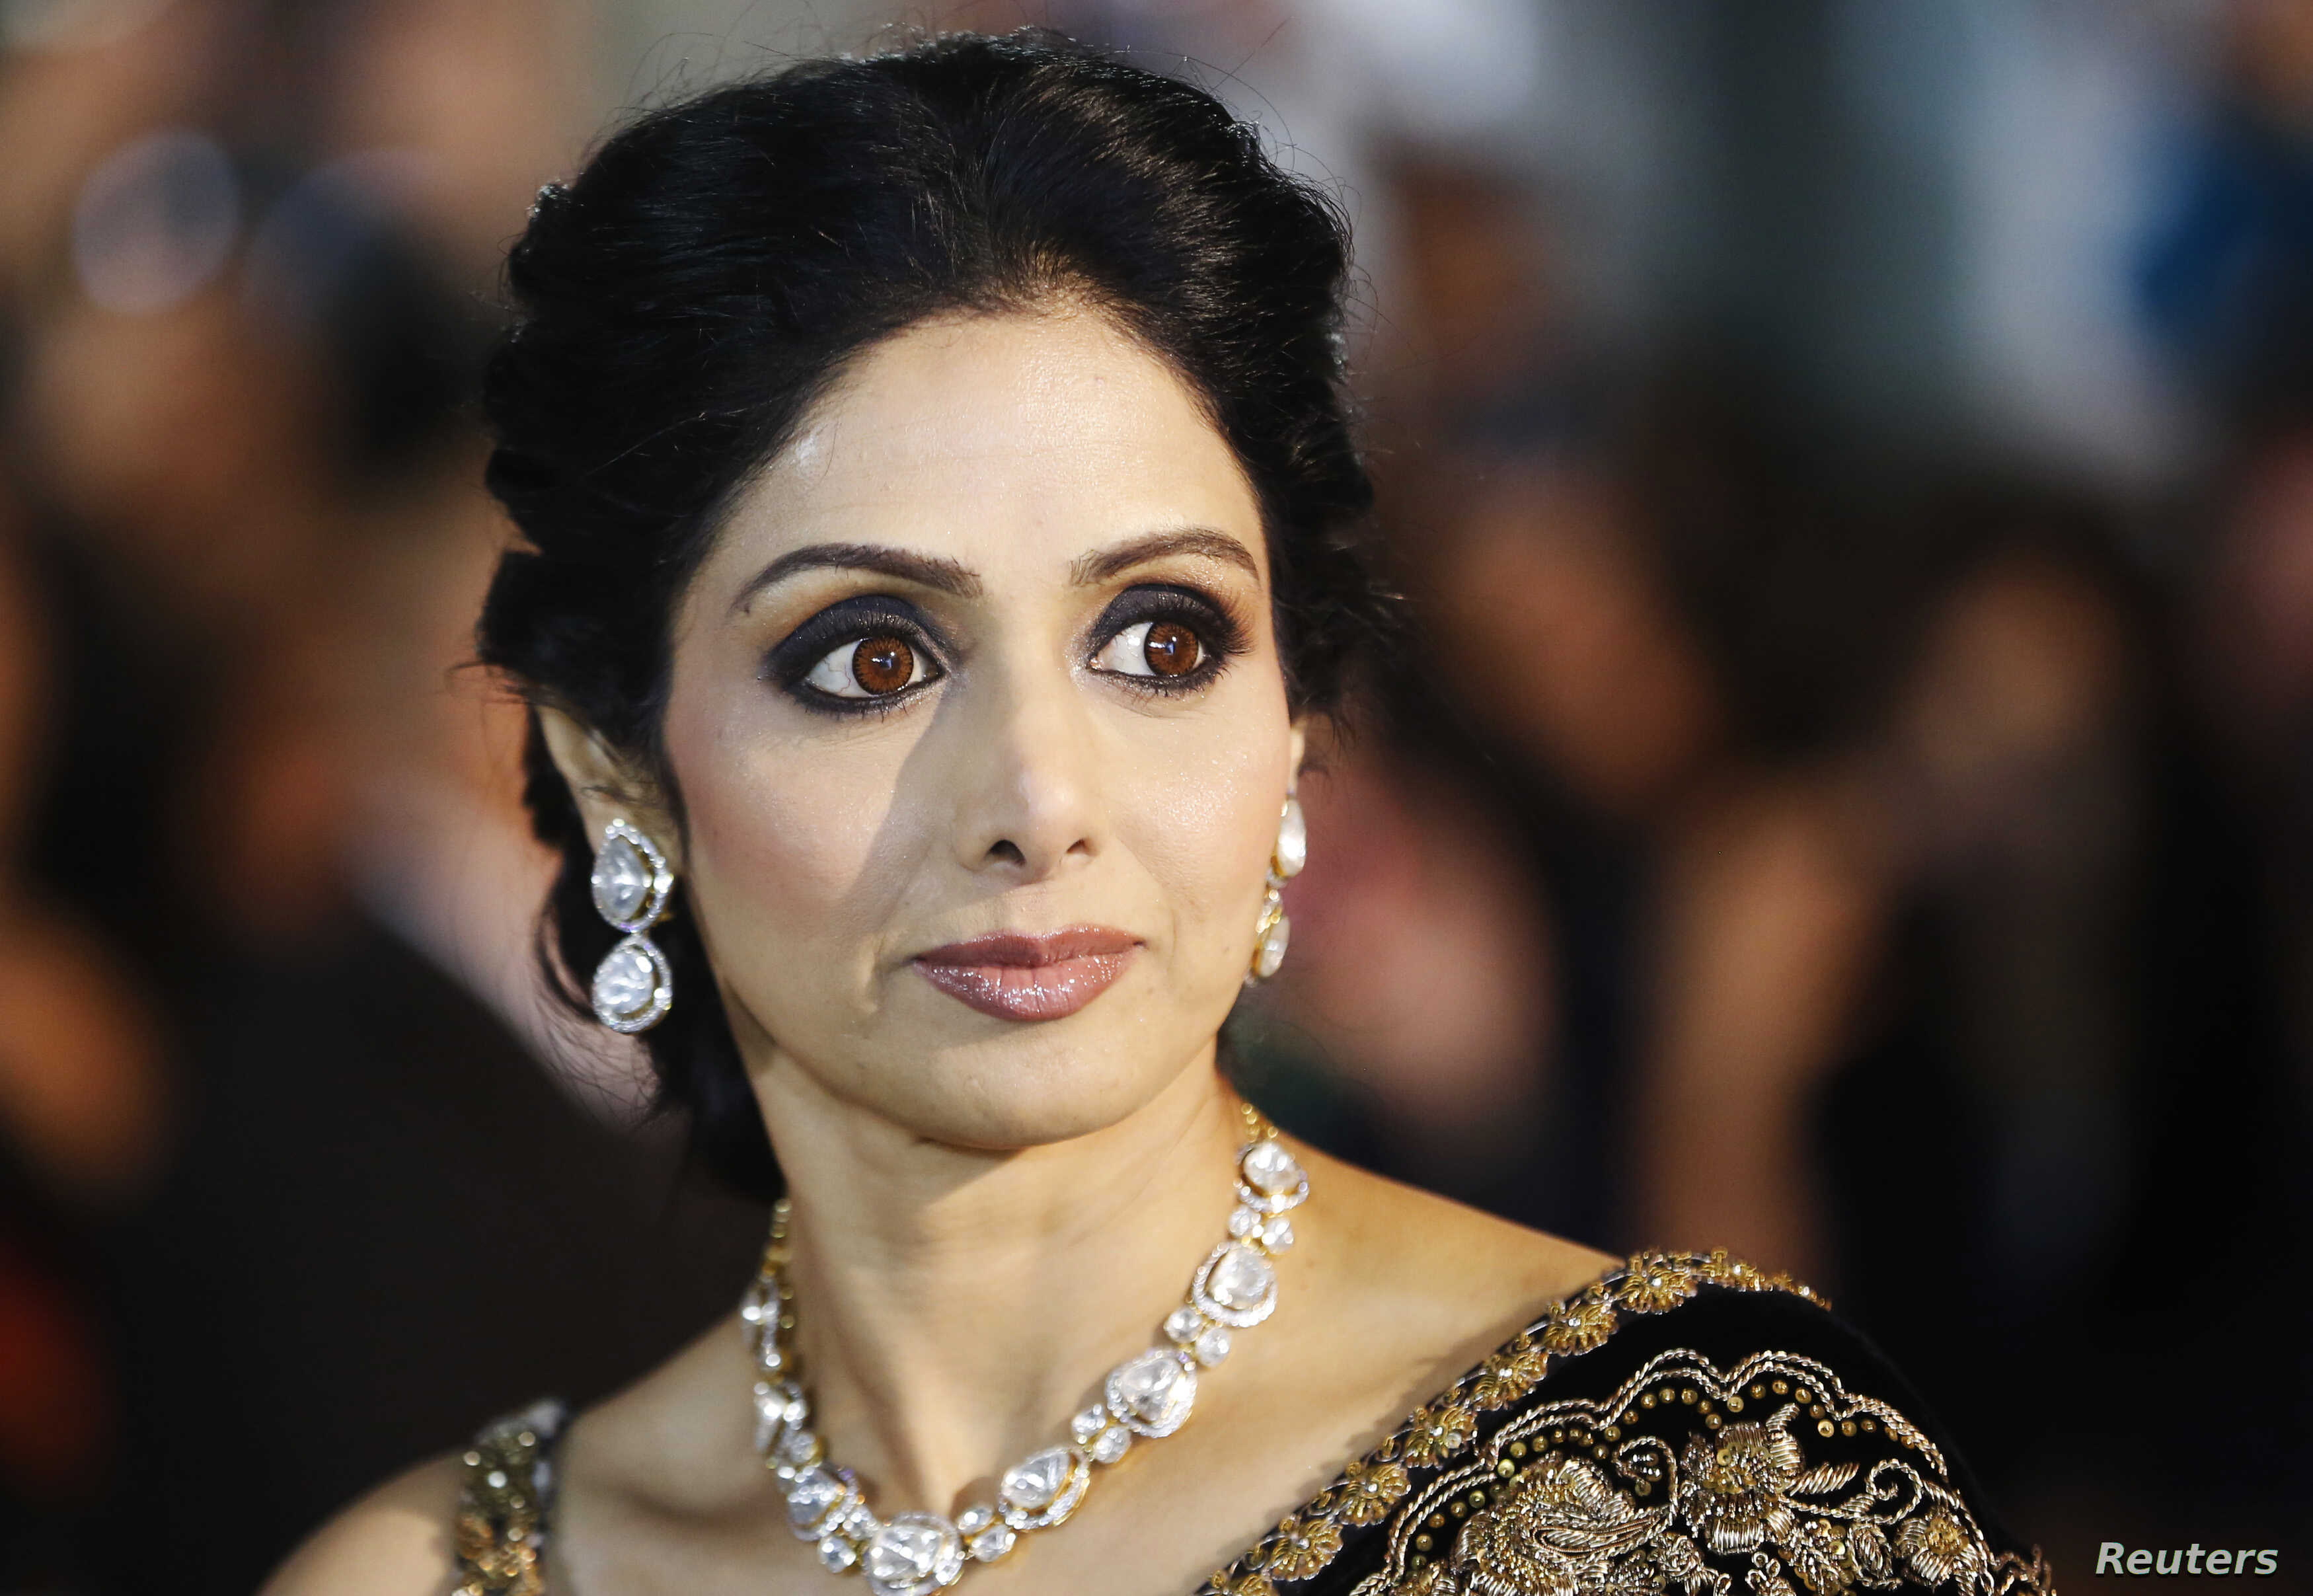 sridevi, famed bollywood actress, dies at 54 | voice of